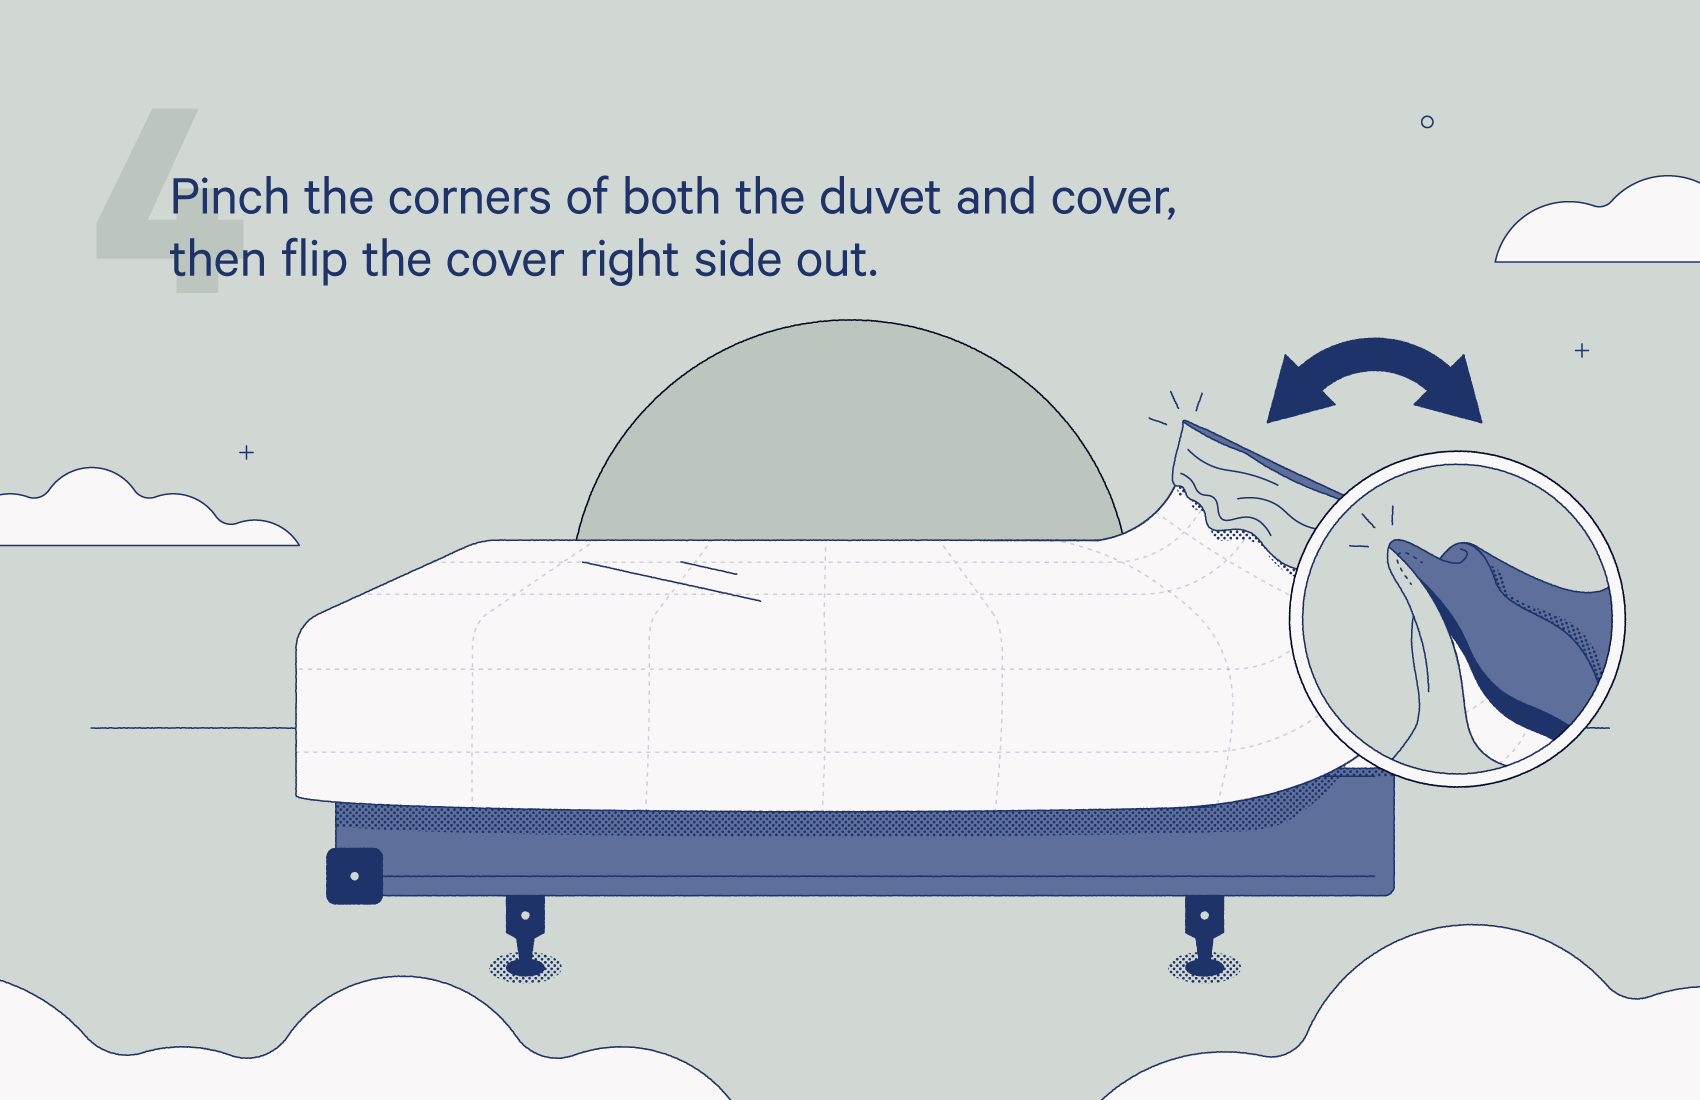 pinch the corners of both the duvet and cover, then flip the cover right side out.